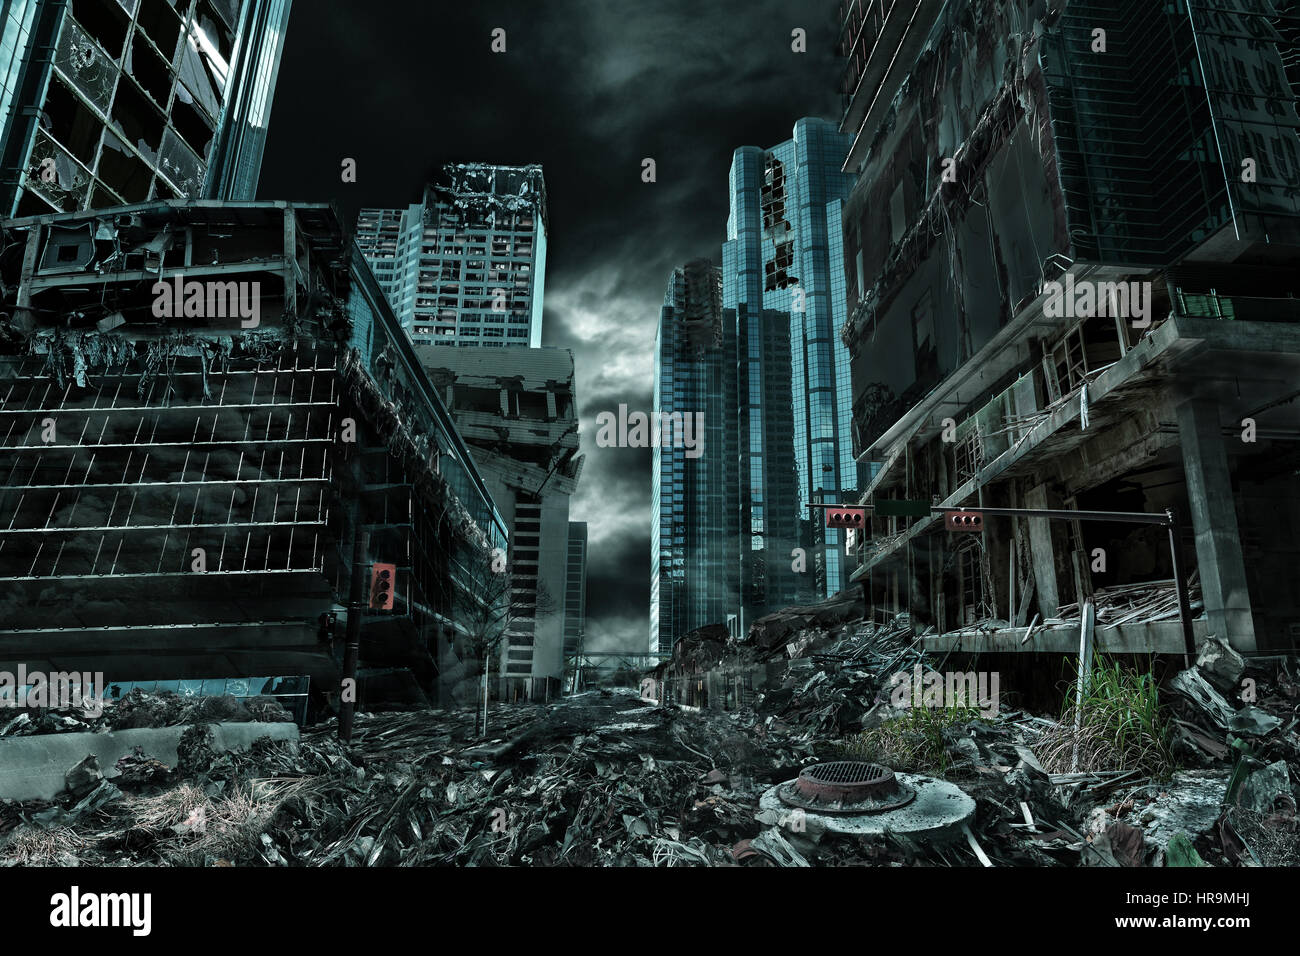 Detailed destruction of fictitious city with debris and collapsing structures. Concept of war, natural disasters, - Stock Image